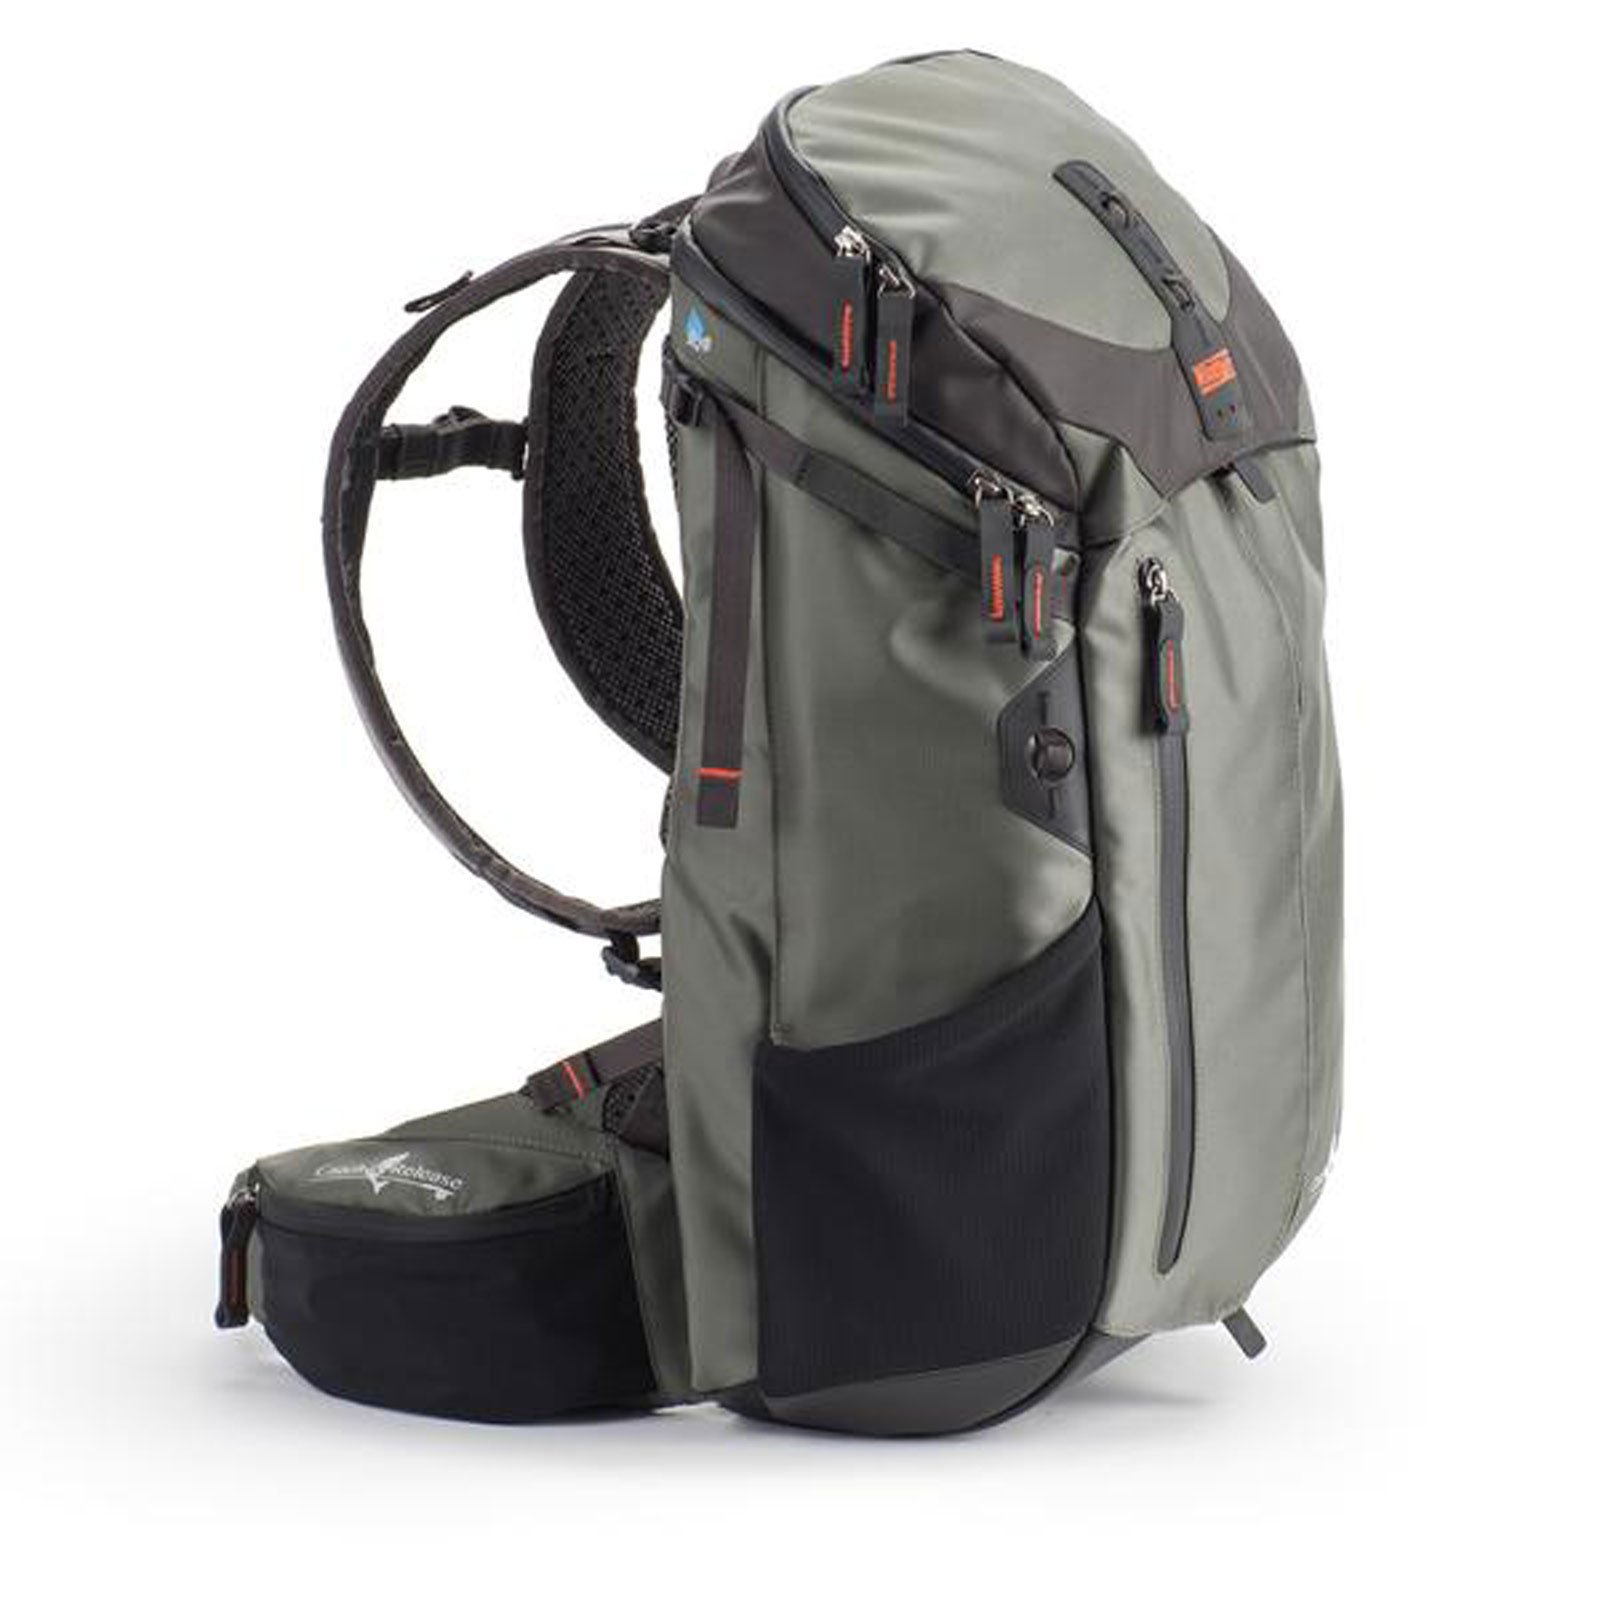 MindShift rotation 180° Catch & Release Backpack by Mindshift